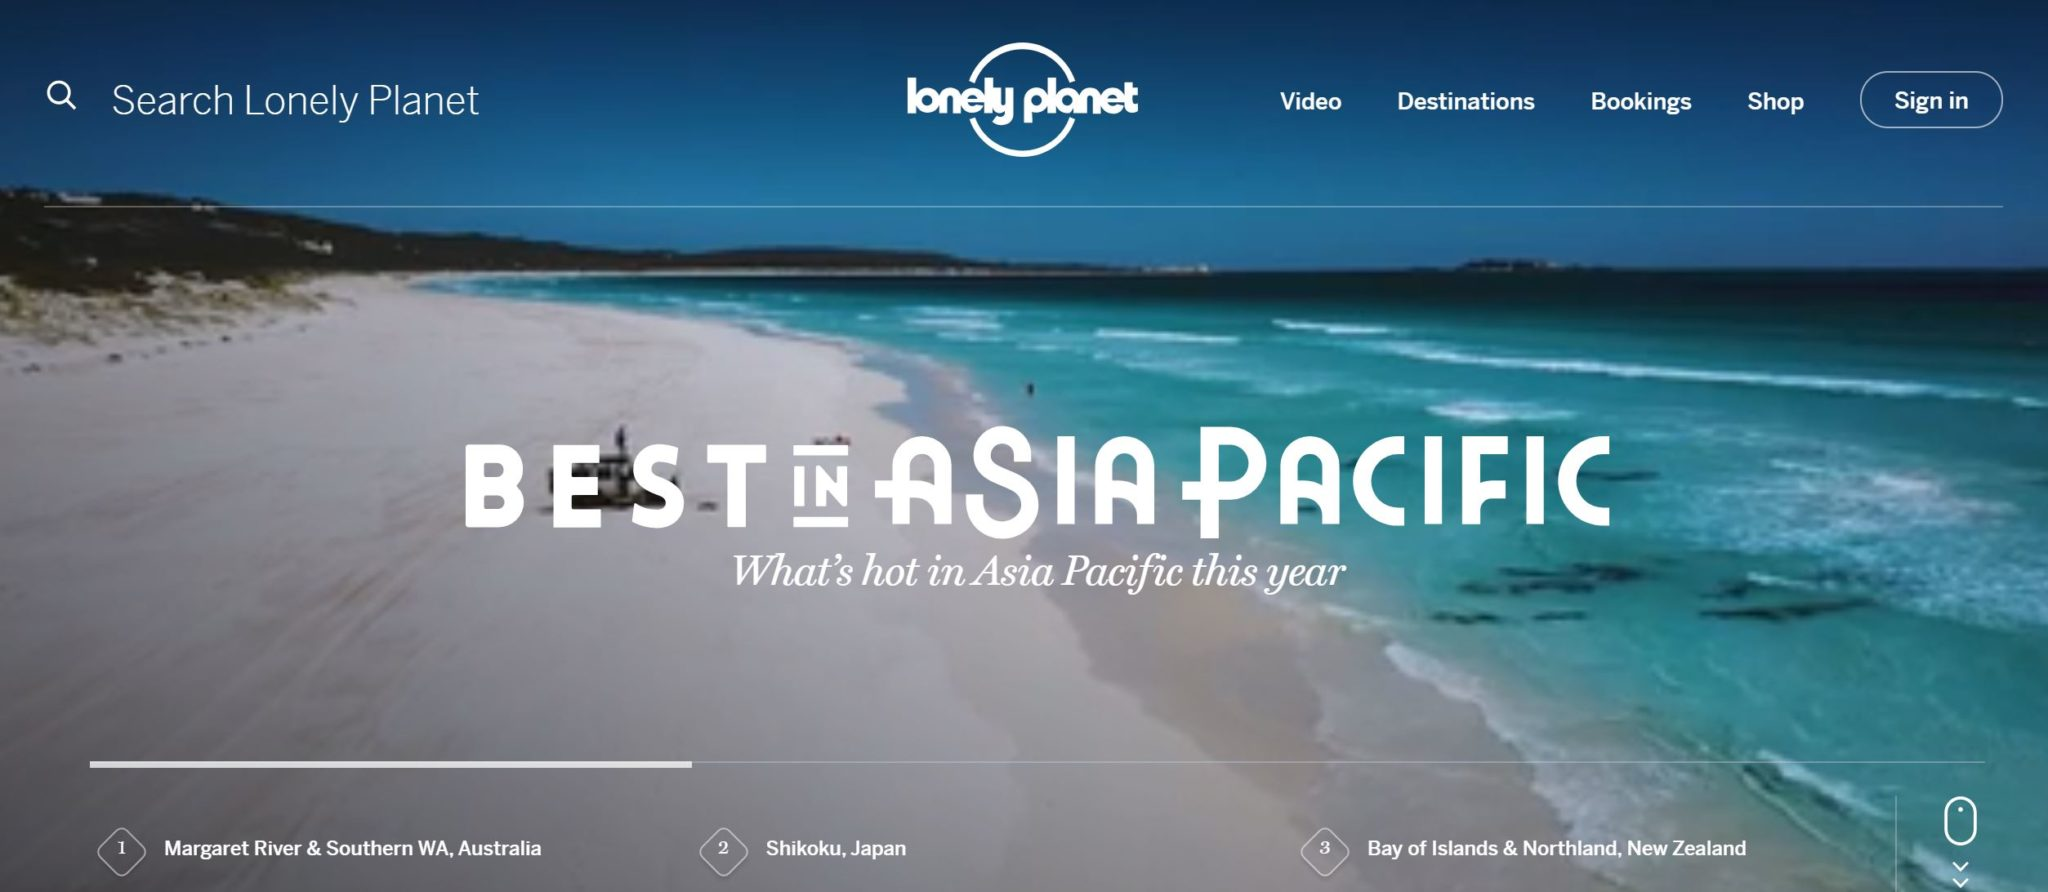 Margaret River and Southern WA named best in Asia Pacific